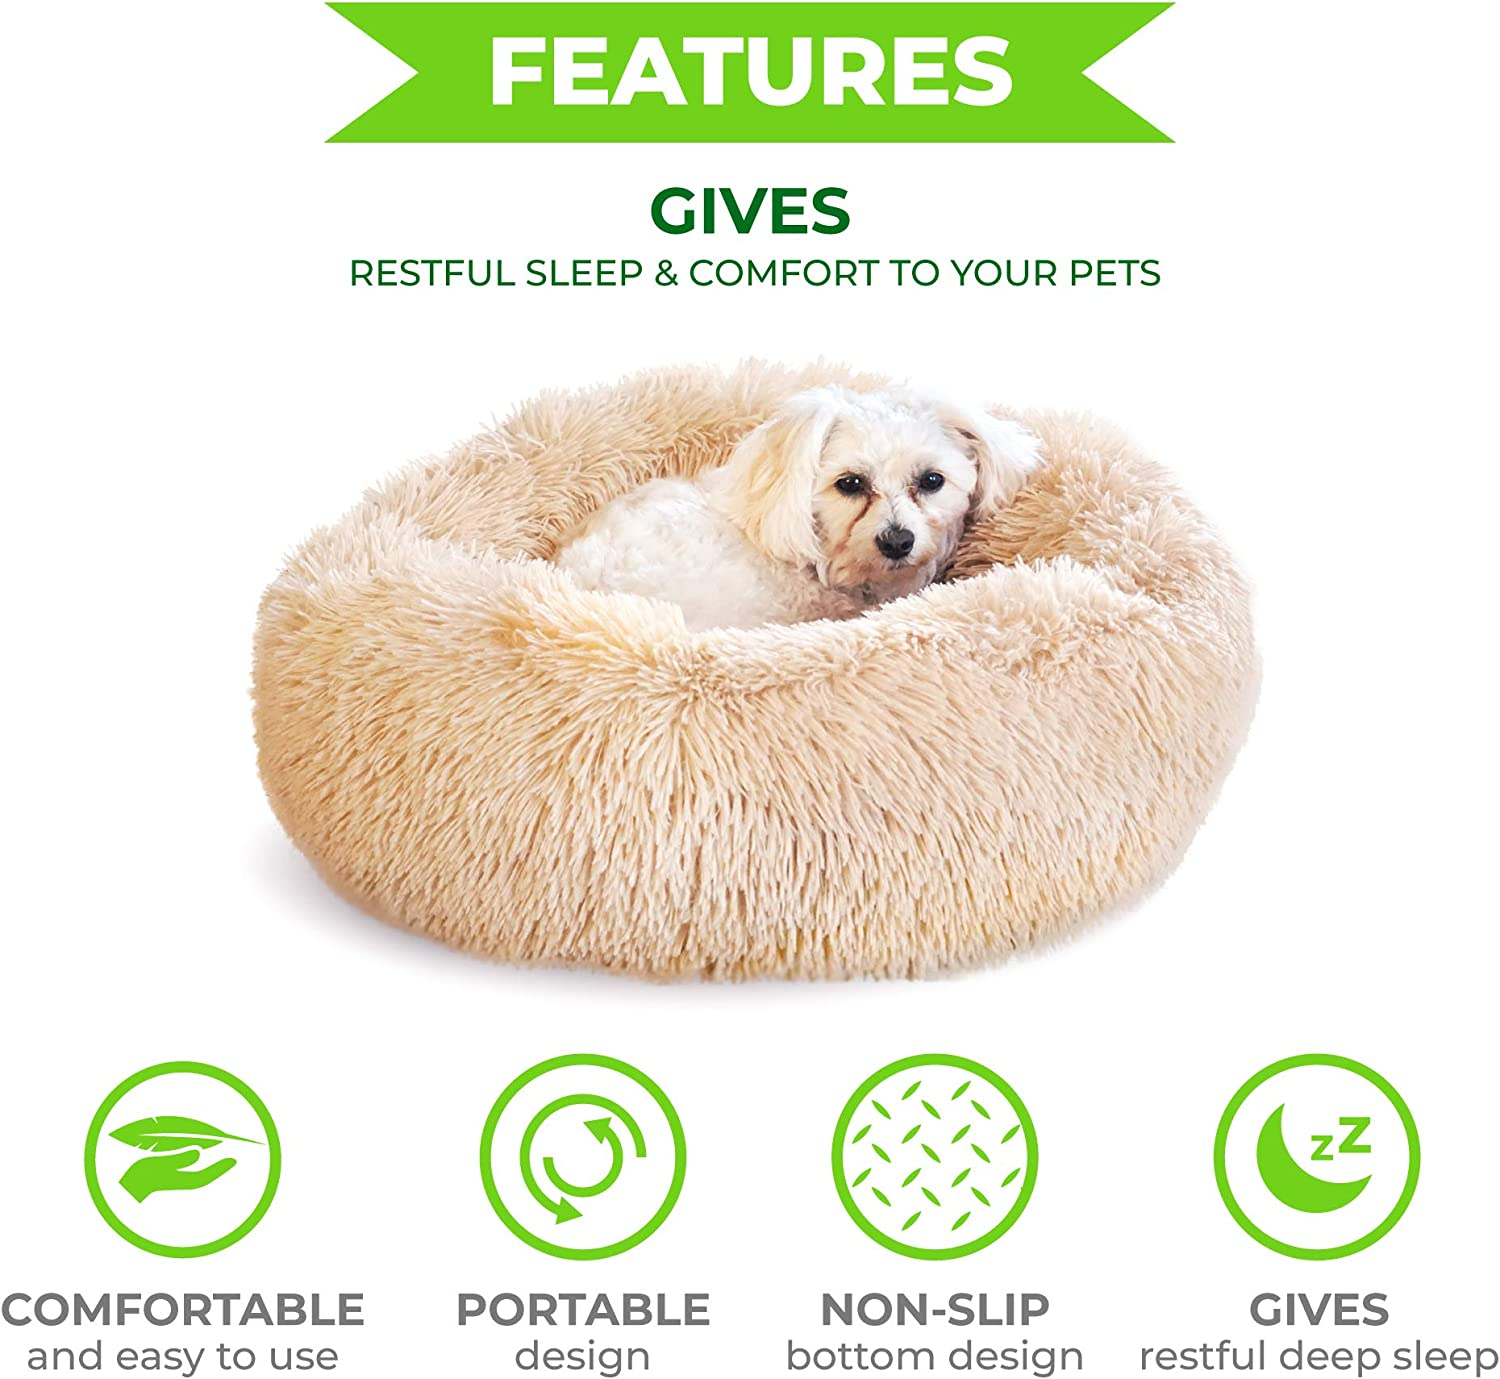 Whiskers & Friends Cat Dog Bed Calming Soft Plush Faux Fur Shag Donut Comfort Cuddler Improve Sleep - Up to 25 Pounds - Gentle Delicate Wash, Air Delicate Dry (Navy-Gray) : Pet Supplies